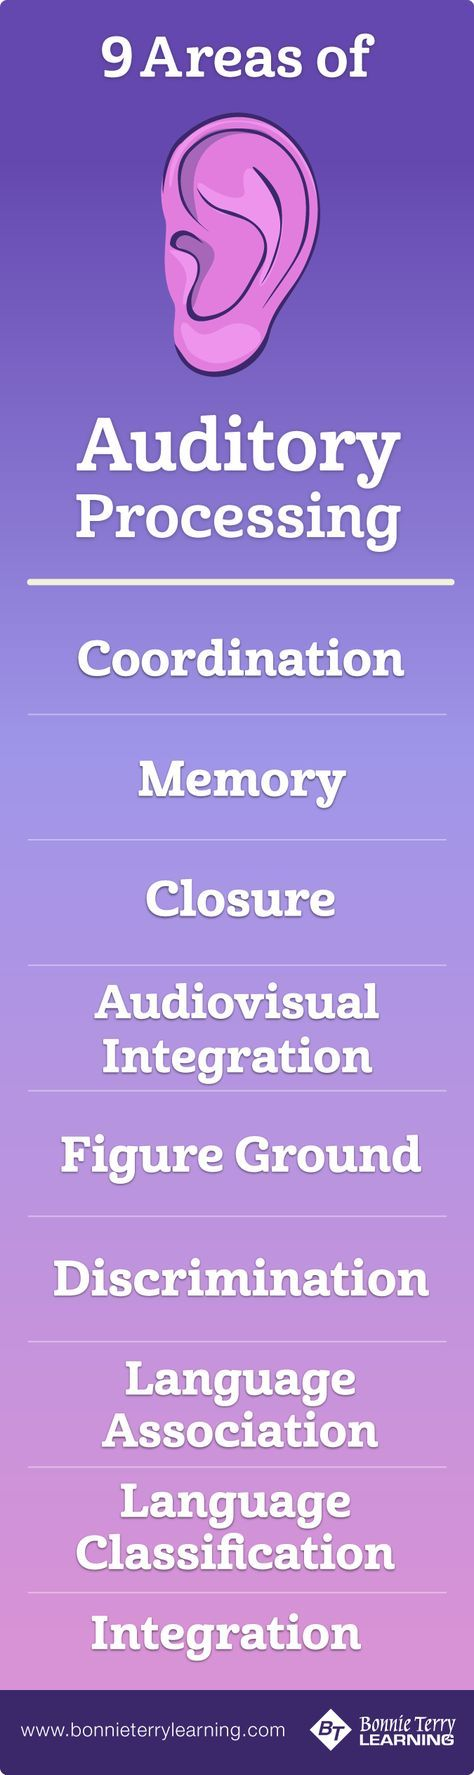 Areas of Auditory Processing